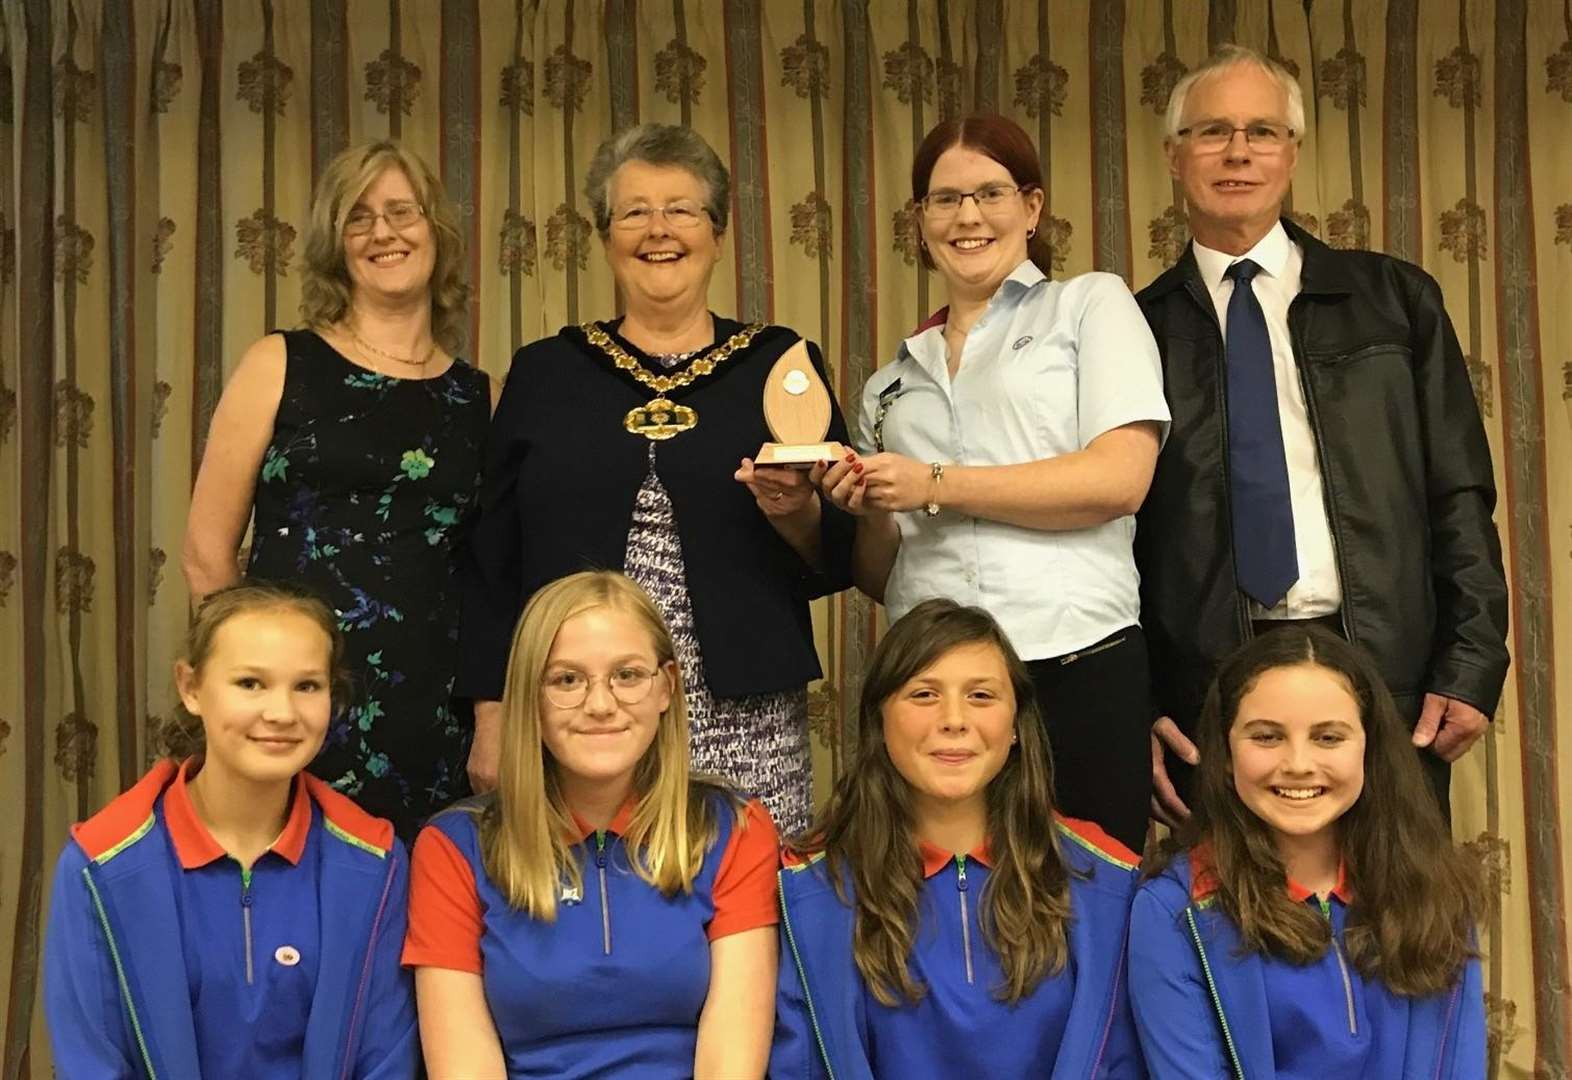 Girl Guide leader and church youth worker is latest county Community Hero award winner